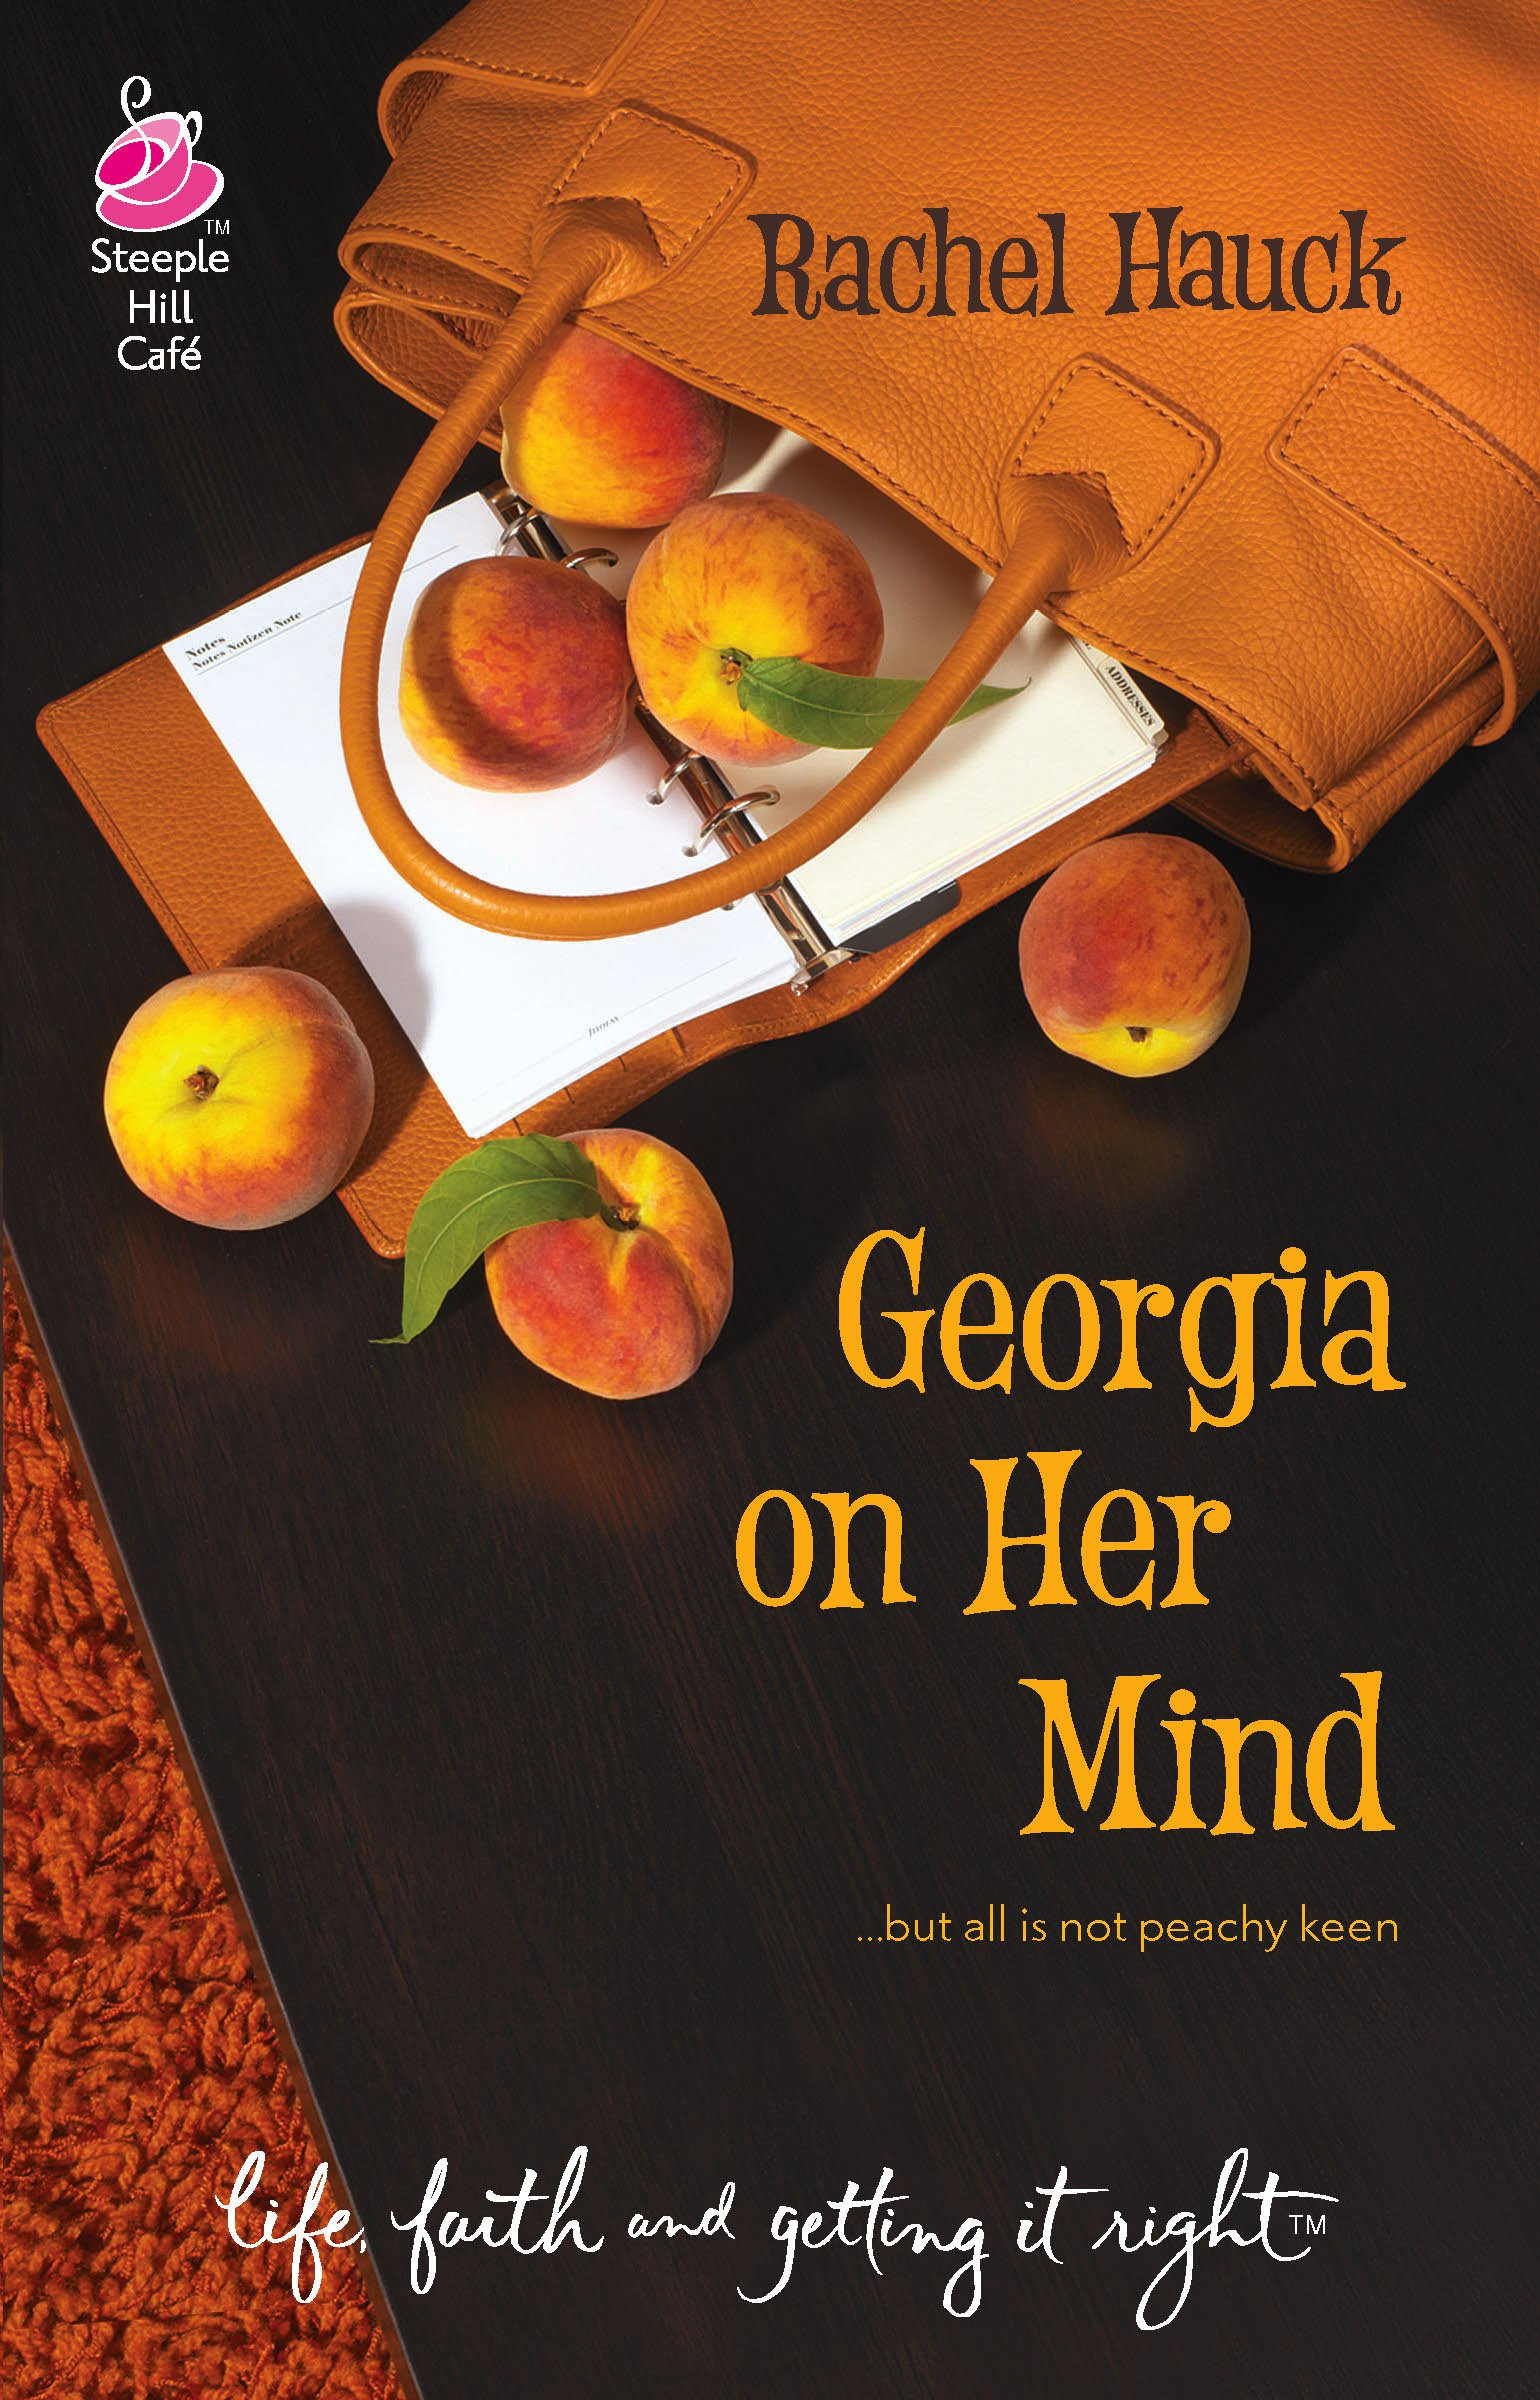 Read Online Georgia on Her Mind (Life, Faith & Getting It Right #15) (Steeple Hill Cafe) pdf epub